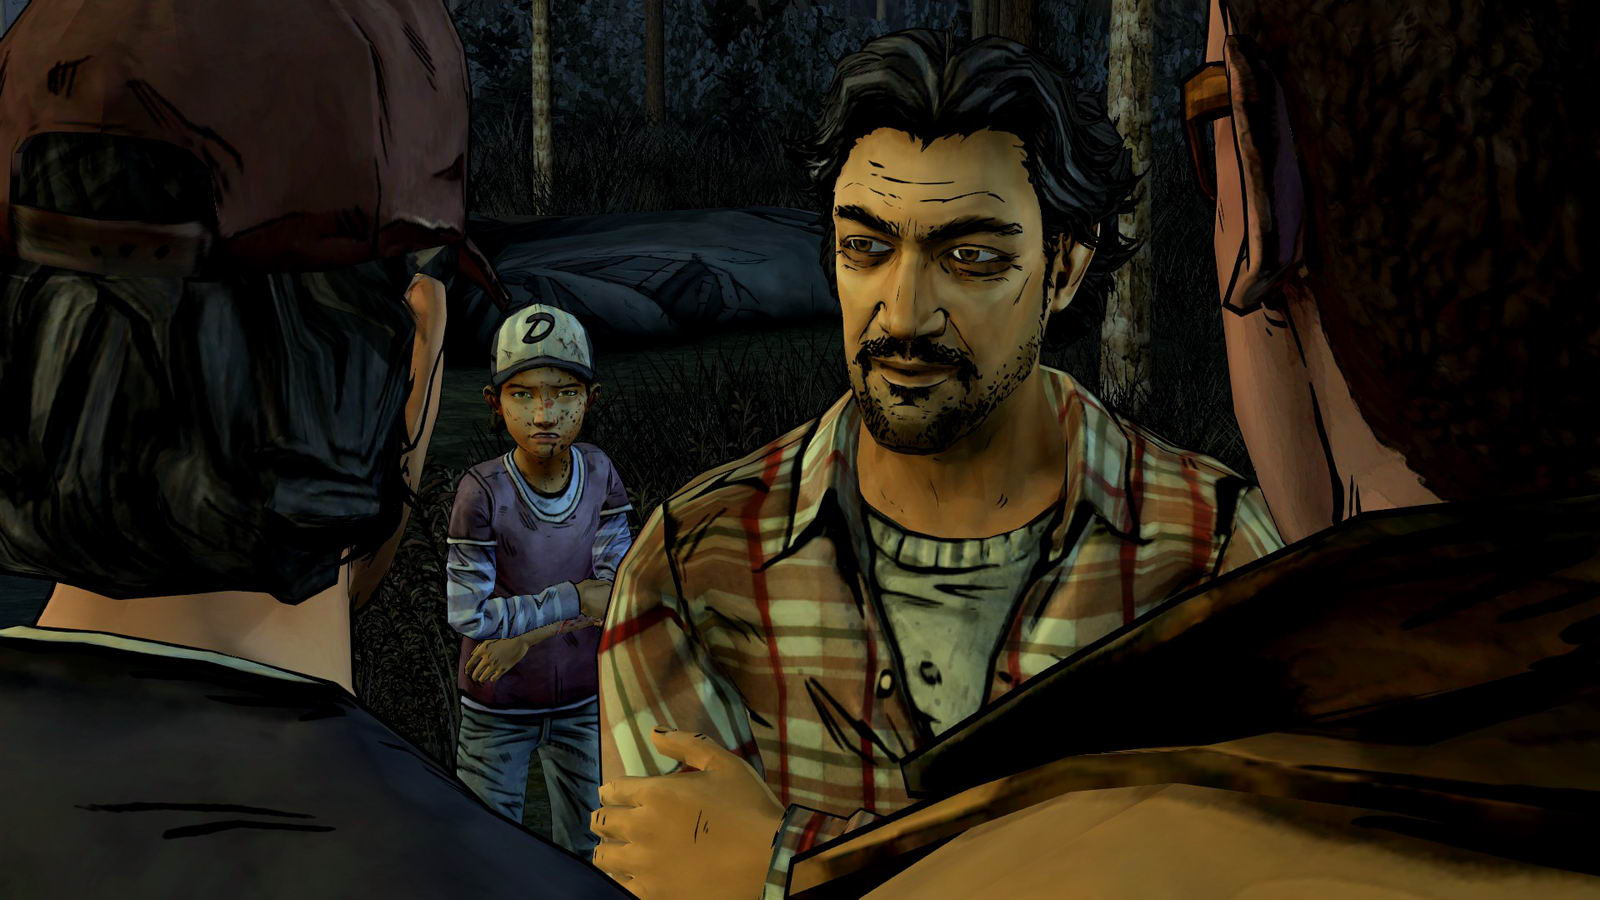 Скриншот The Walking Dead: Season Two Episode 1 - All That Remains